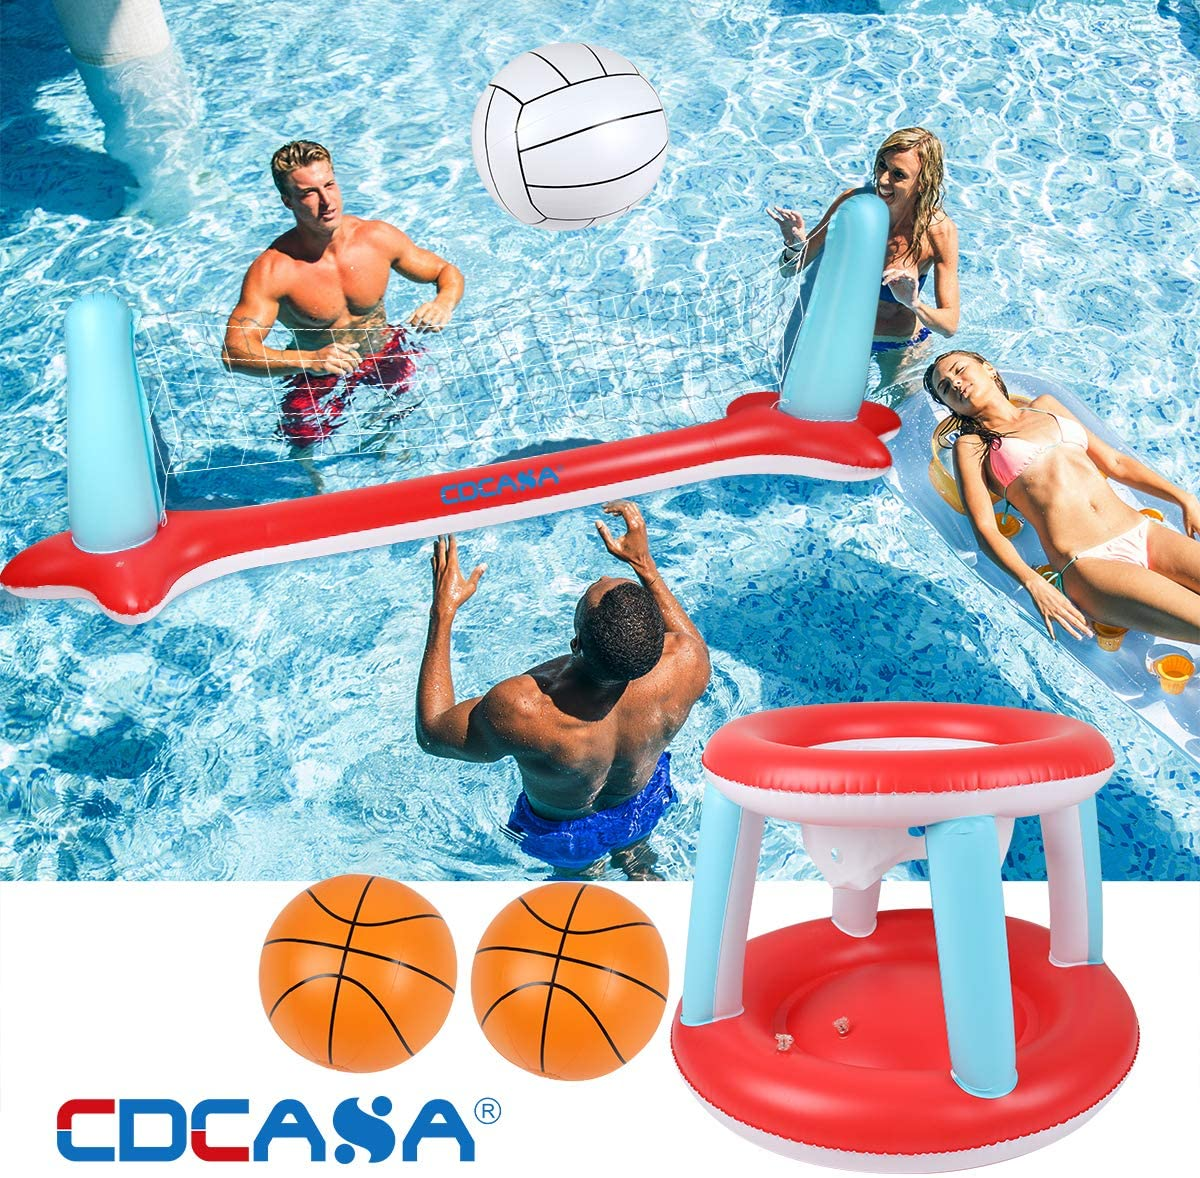 """Inflatable Pool Float Set Volleyball Net & Basketball Hoops; Balls Included for Kids and Adults Swimming Game Toy, Floating, Summer Floaties, Volleyball Court (115""""x30""""x37"""") Basketball (29""""x22""""x29"""")"""